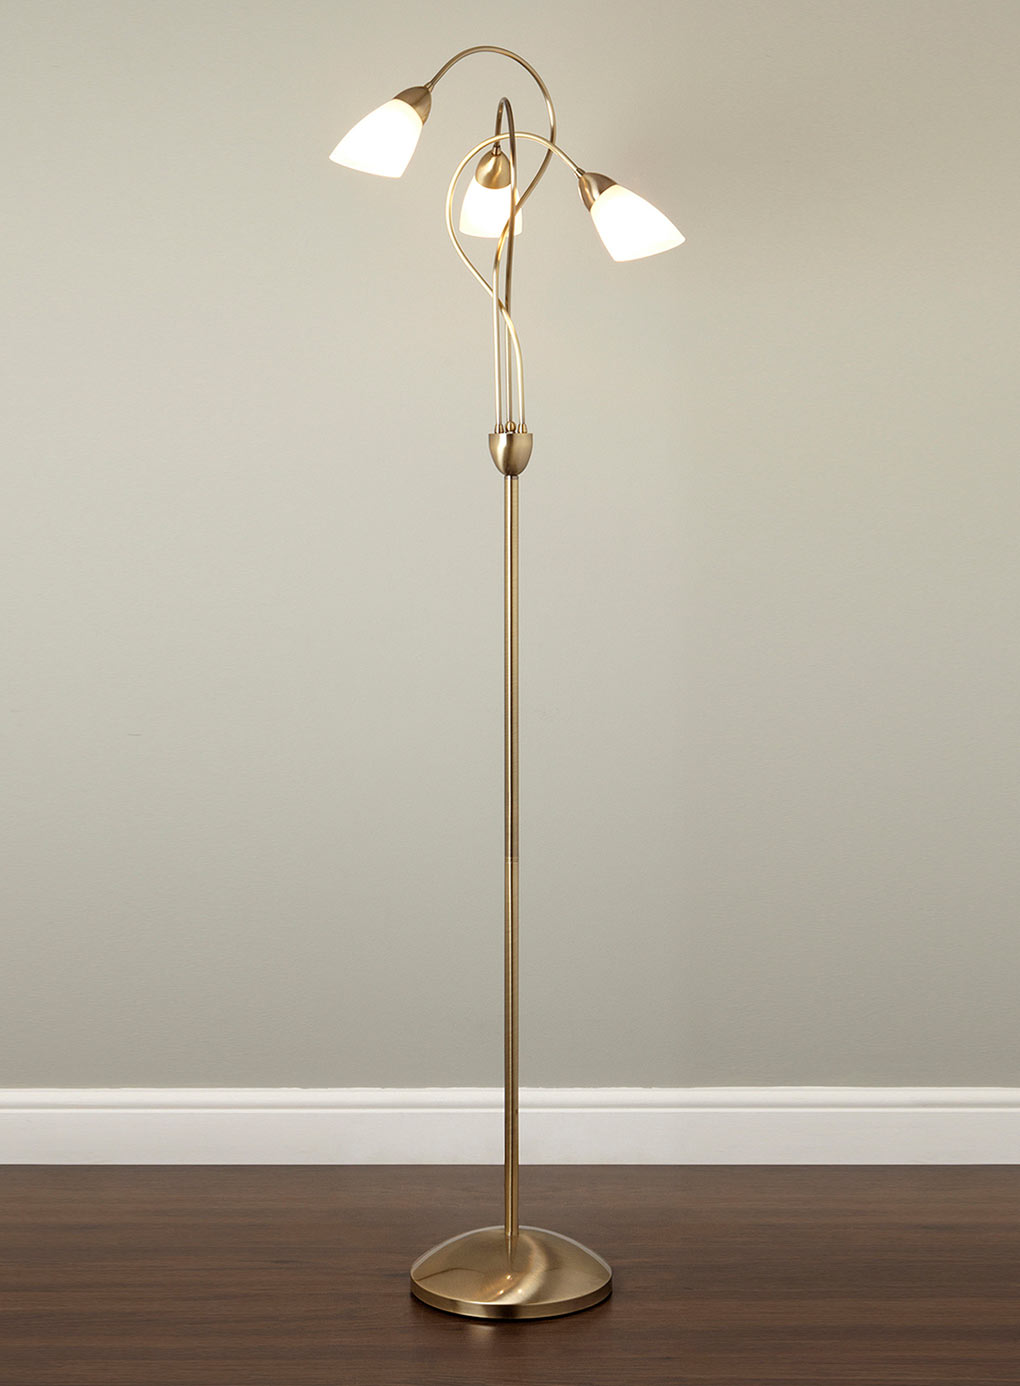 10 Elegant Ways to Position Your Antique floor lamps